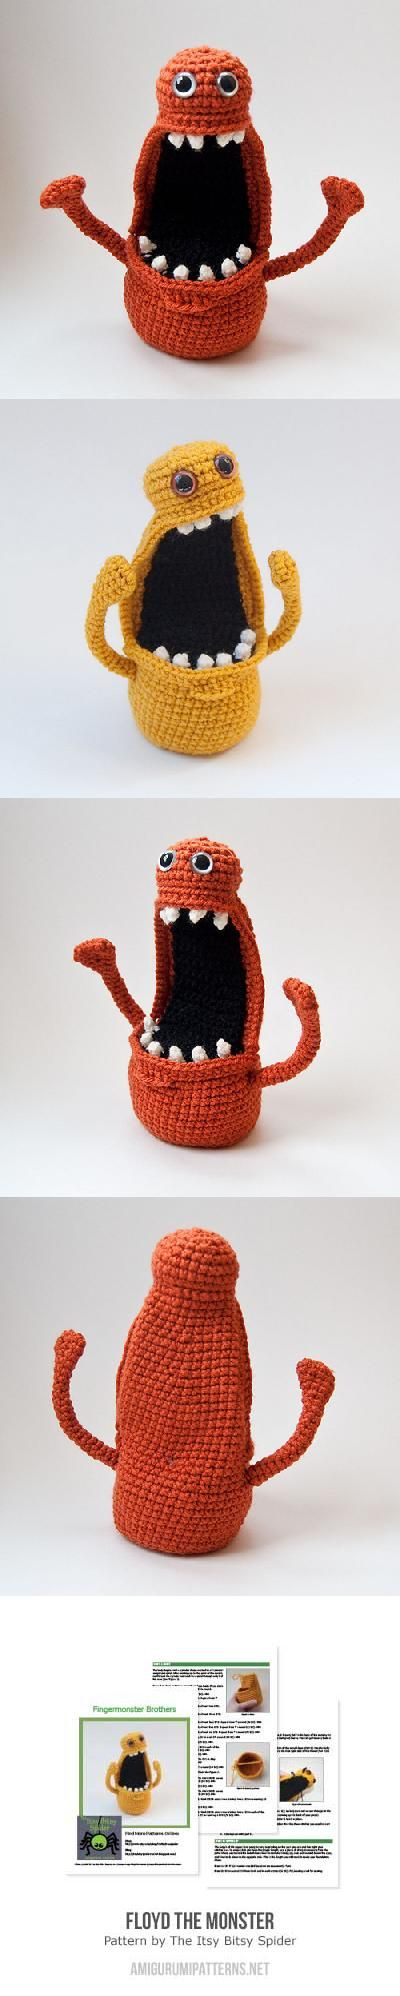 571ecf9b76c60 Floyd the monster amigurumi pattern by The Itsy Bitsy Spider   Knit ...